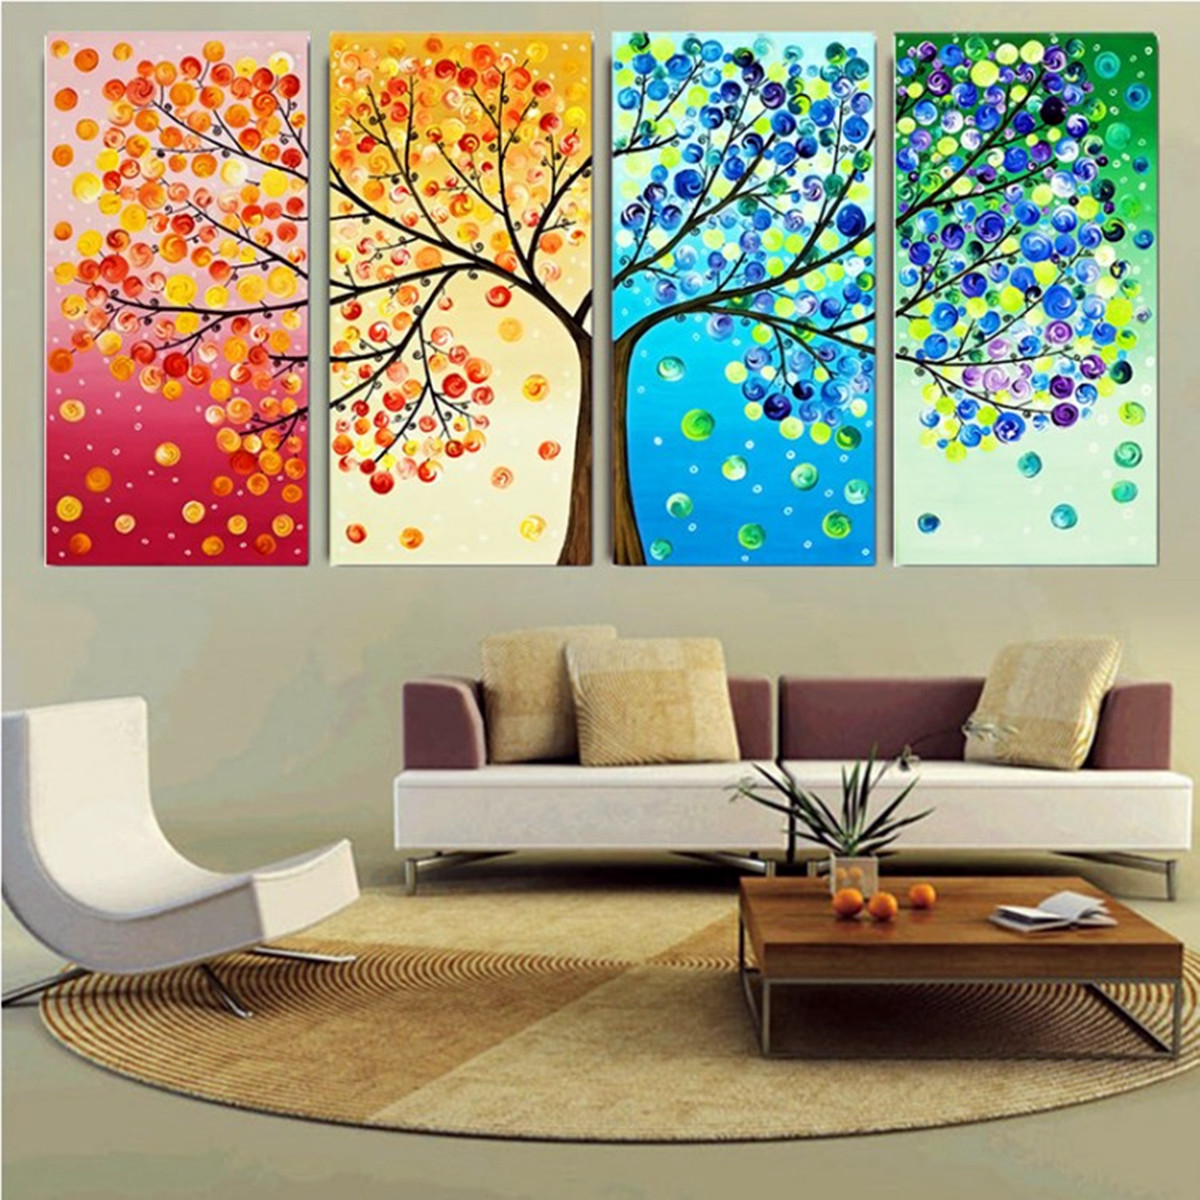 Diy handmade colorful season tree counted cross stitch for Home decorations amazon